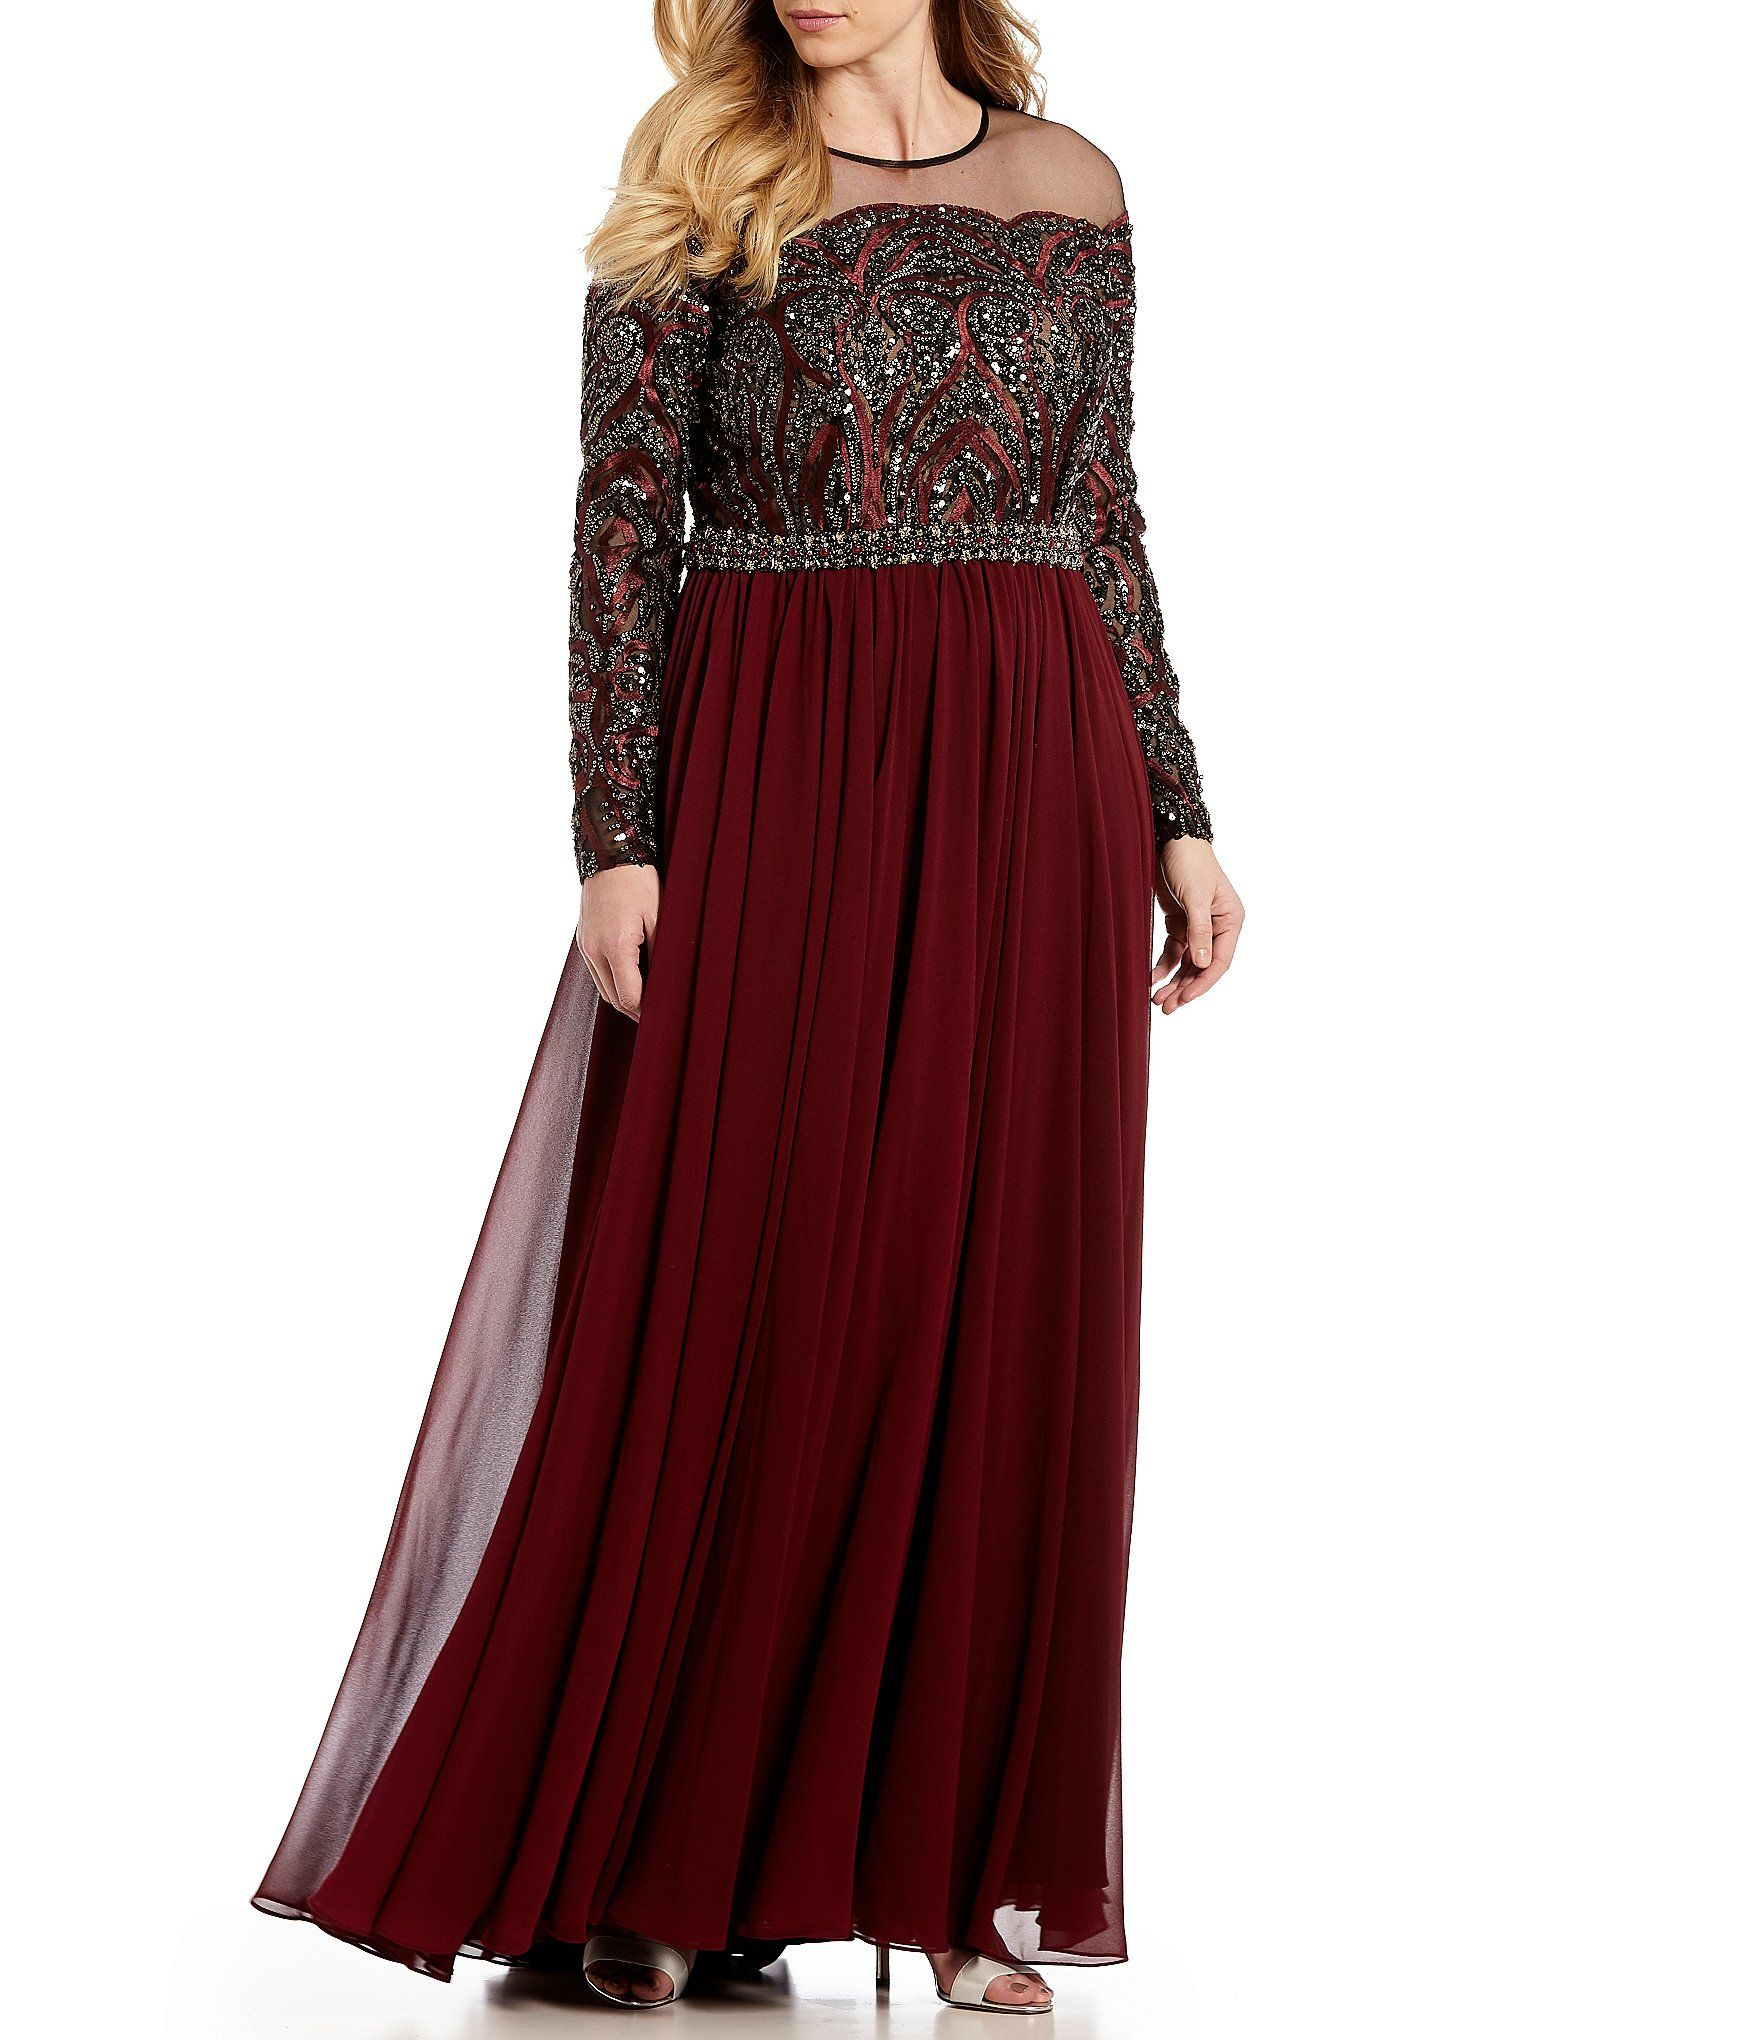 850b98fb3fd Shop for Terani Couture Plus Size Long Sleeve Beaded Bodice Illusion Gown  at Dillards.com. Visit Dillards.com to find clothing